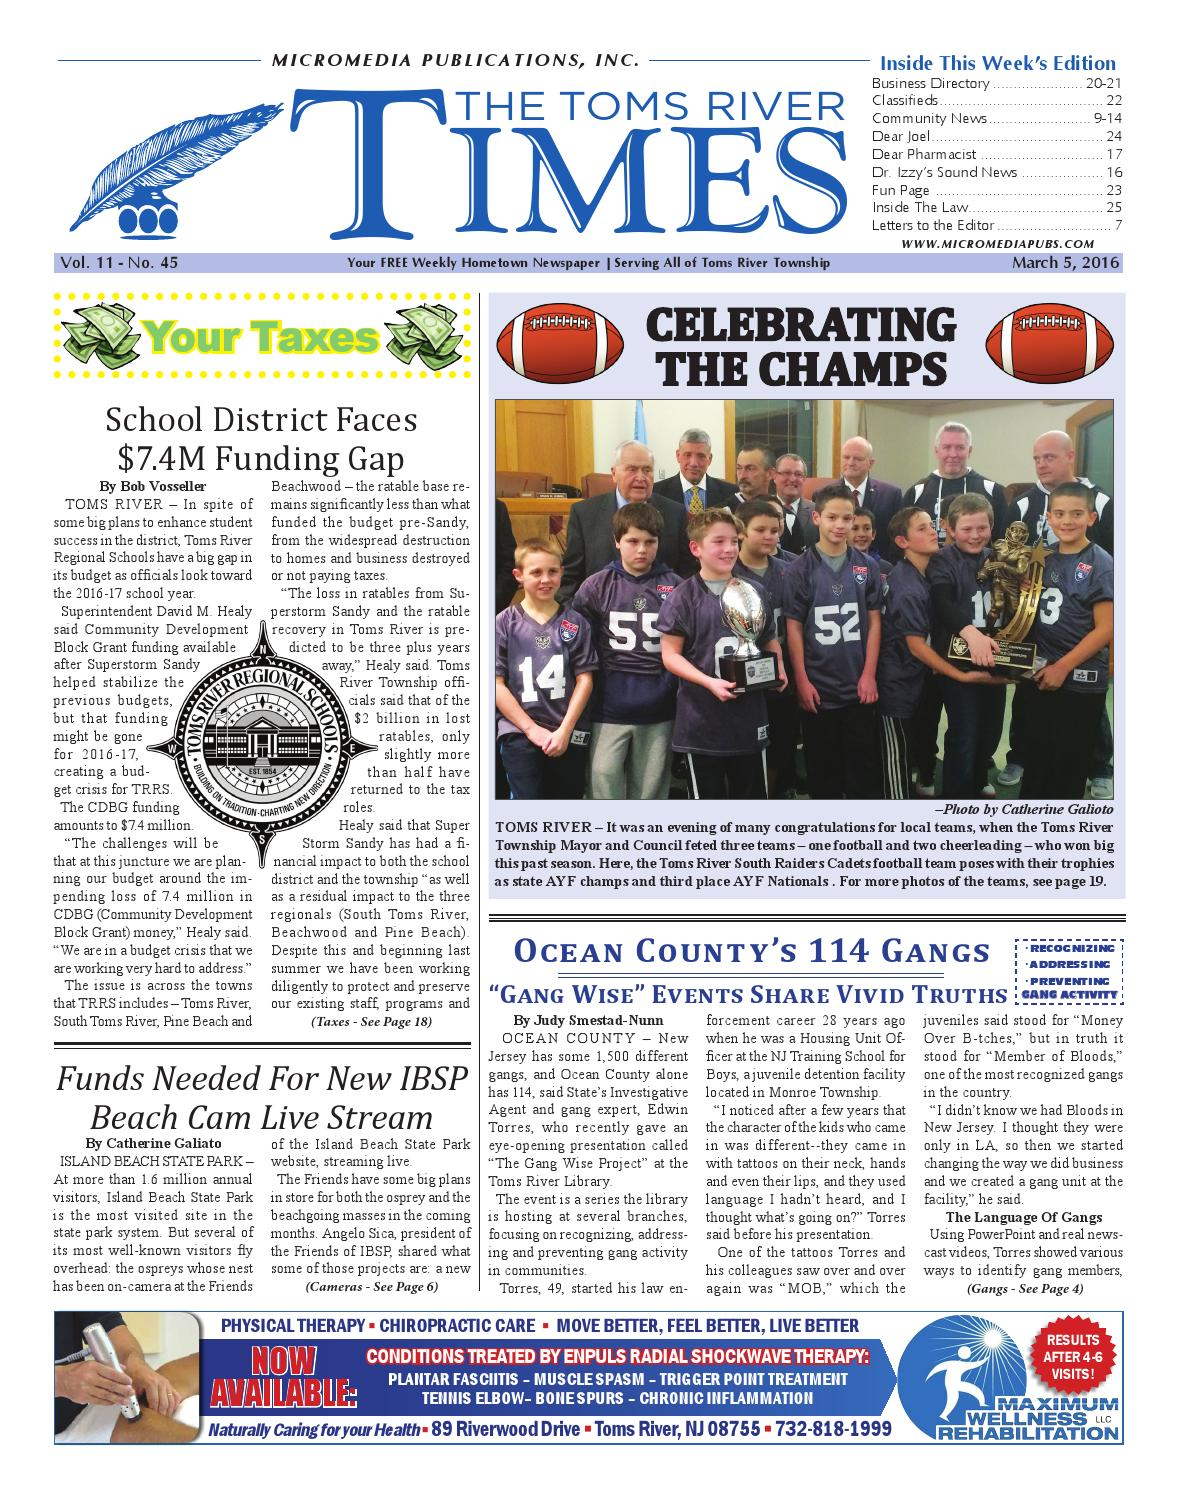 2016 03 05 The Toms River Times By Micromedia Publications Jersey If You Run Out Of Room On Starter Relay Quotbquot Post Install A Power Shore Online Issuu